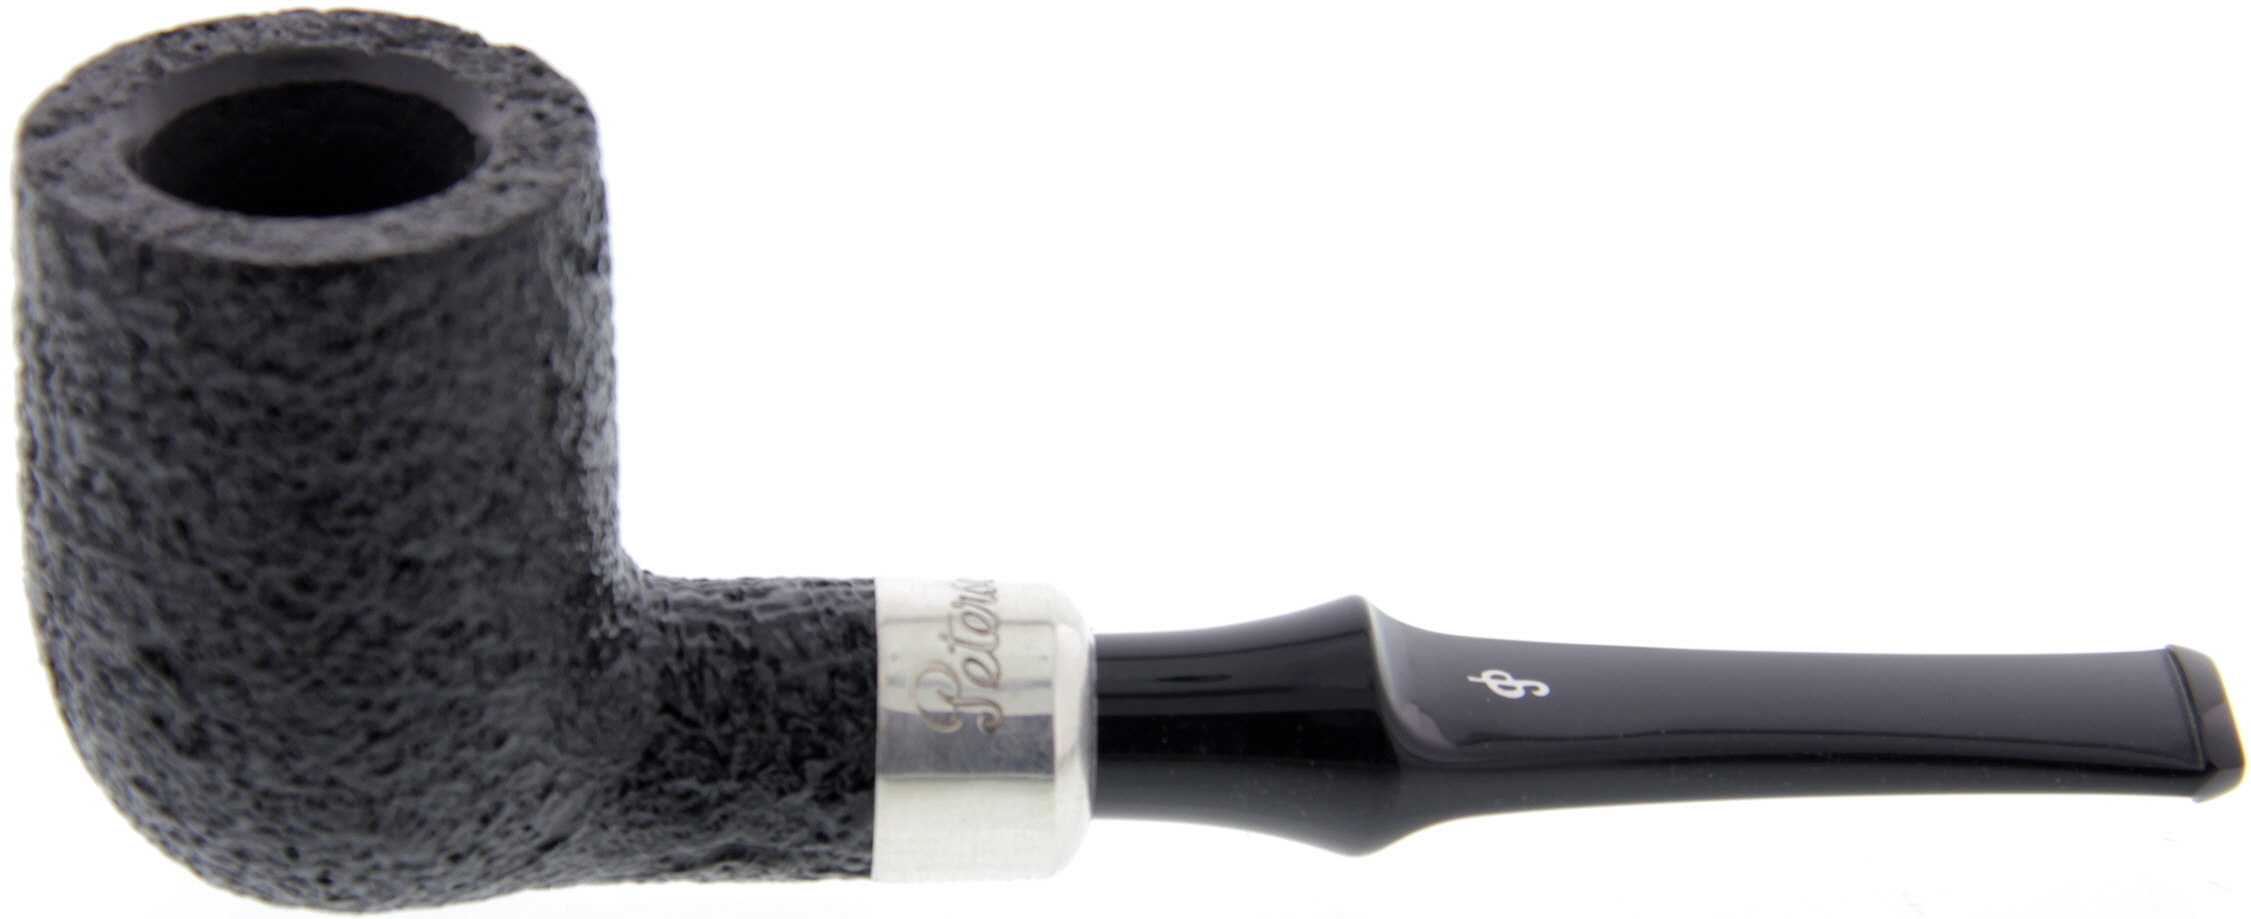 Peterson Pipe of the Year 2014 Sandblast